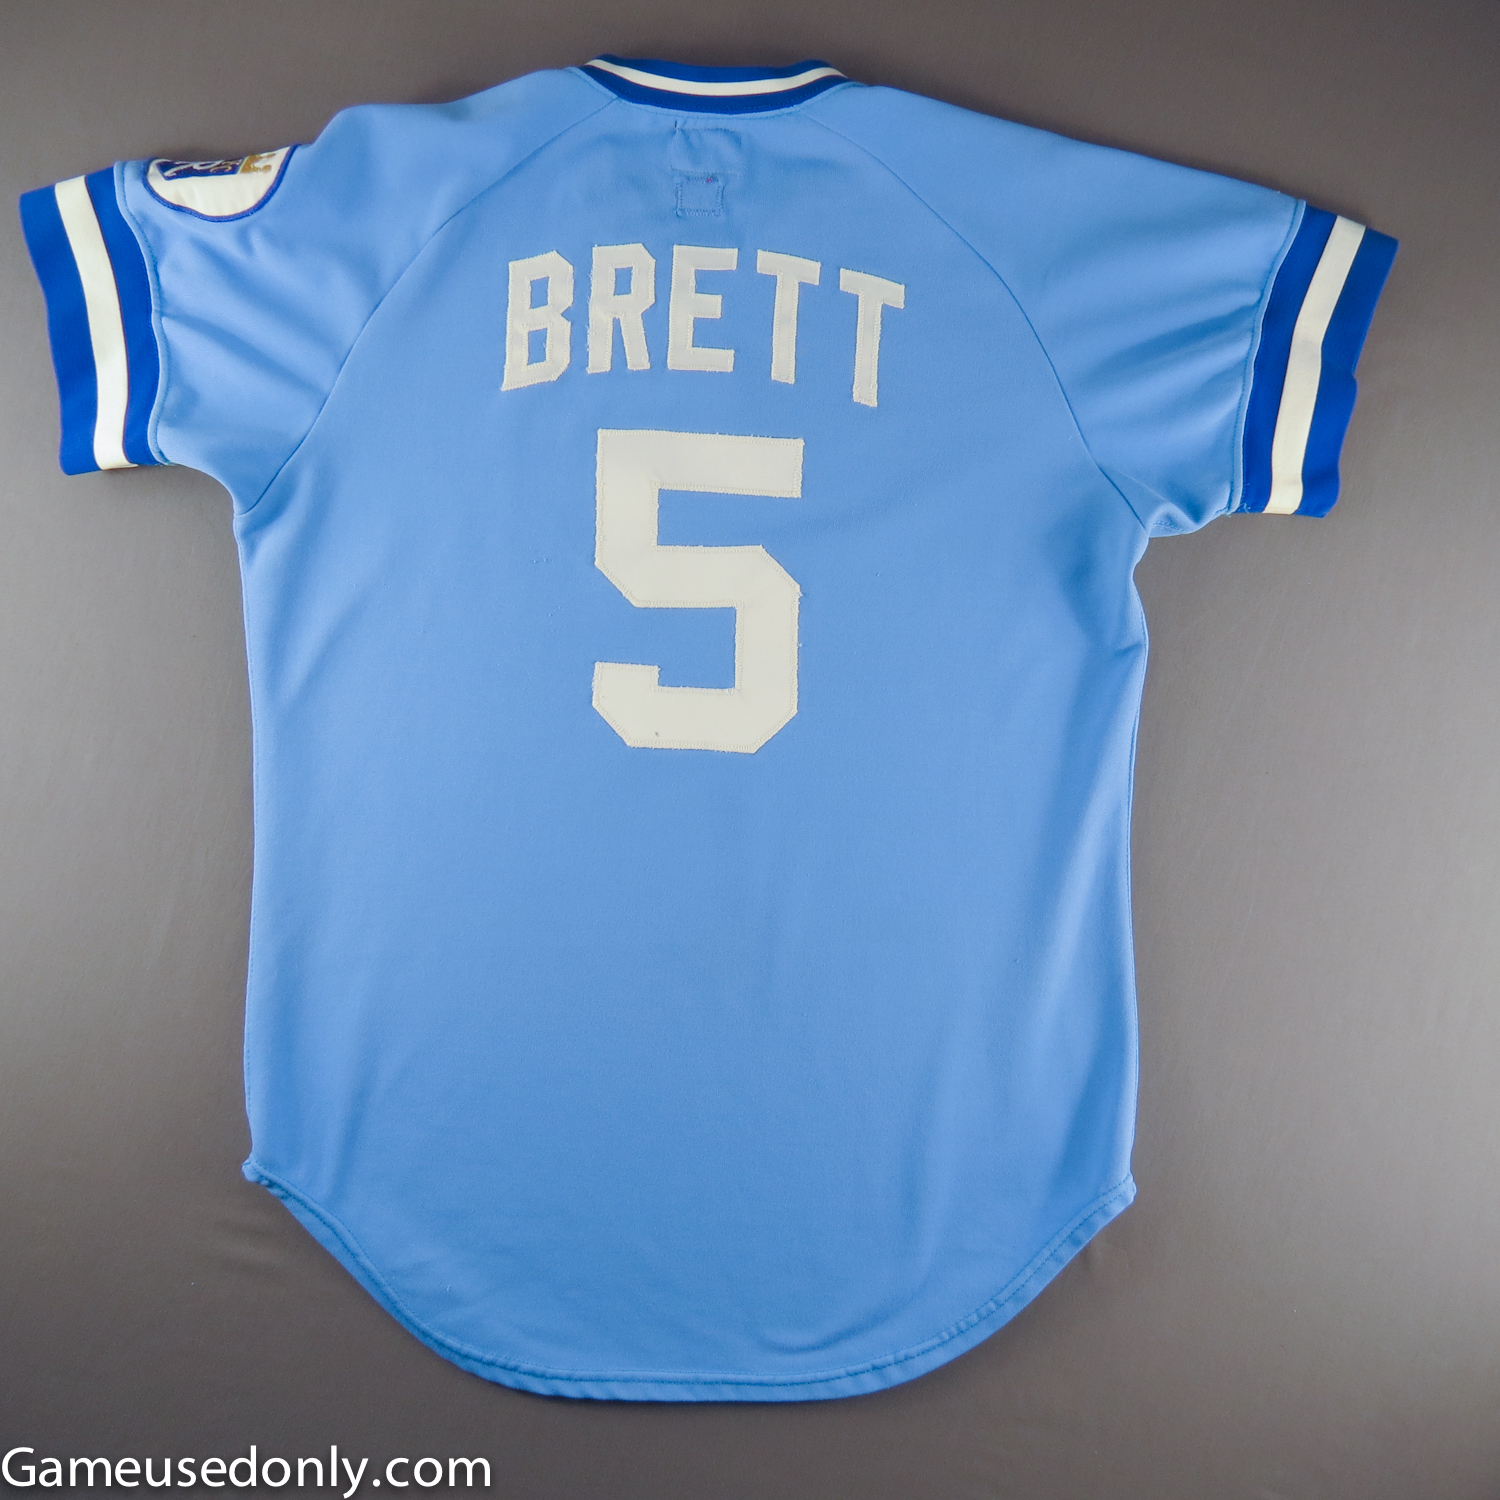 George-Brett-Game-Worn-Jersey-1979-Royals